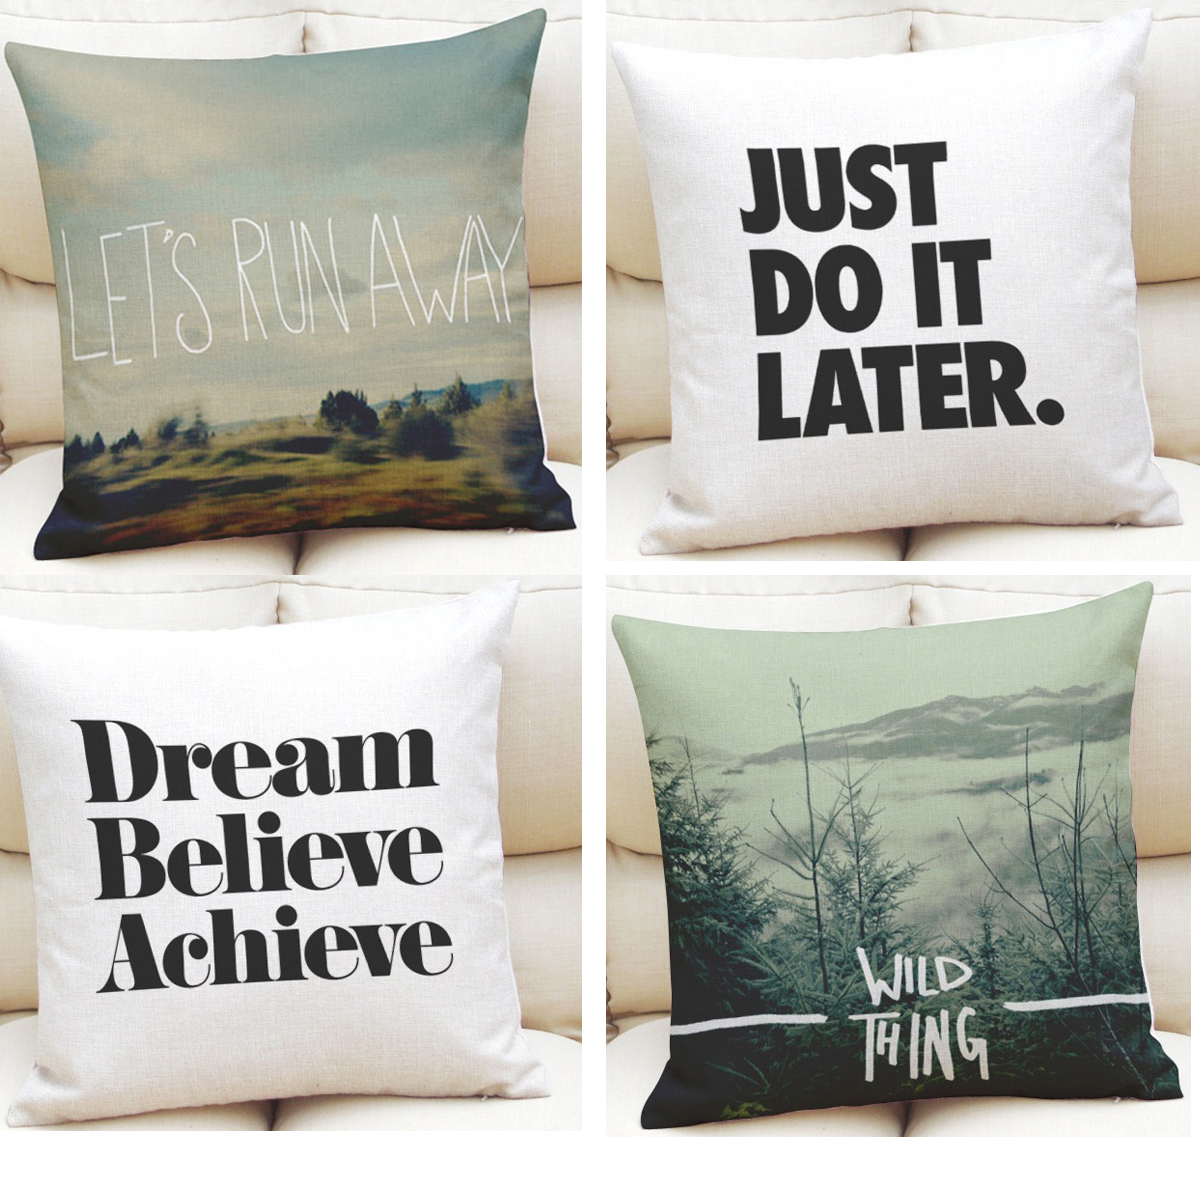 High Quality Sofa Pillows Us 3 9 Blue Ocean Beach Style Nautical Cotton Linen Decorative Pillow Cover Sofa Cushion Cover 45x45cm High Quality Seat Back Cushions In Cushion